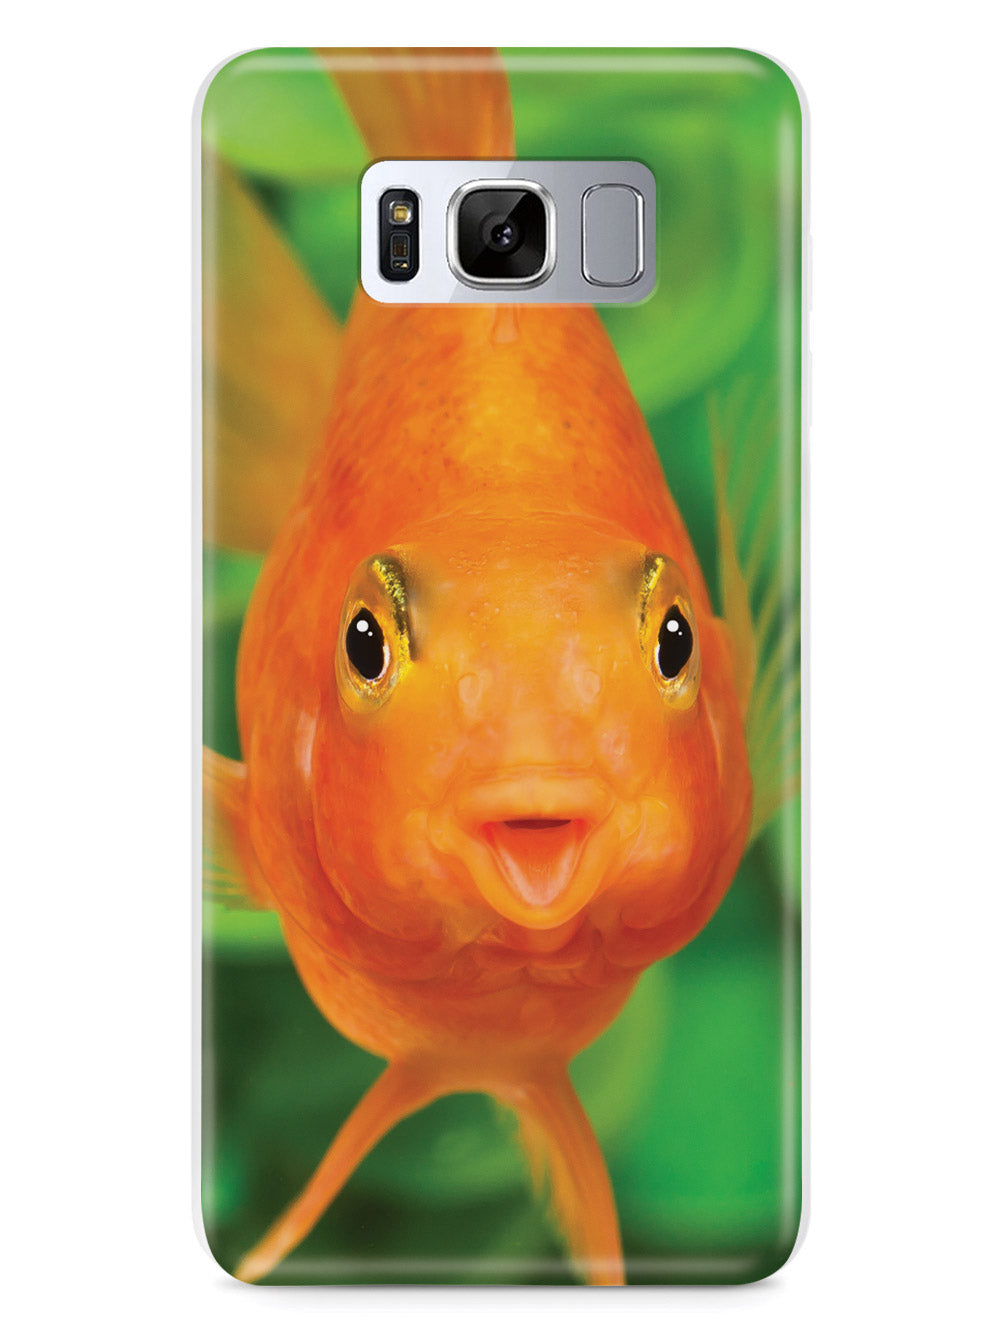 Cute And Funny Goldfish - White Case